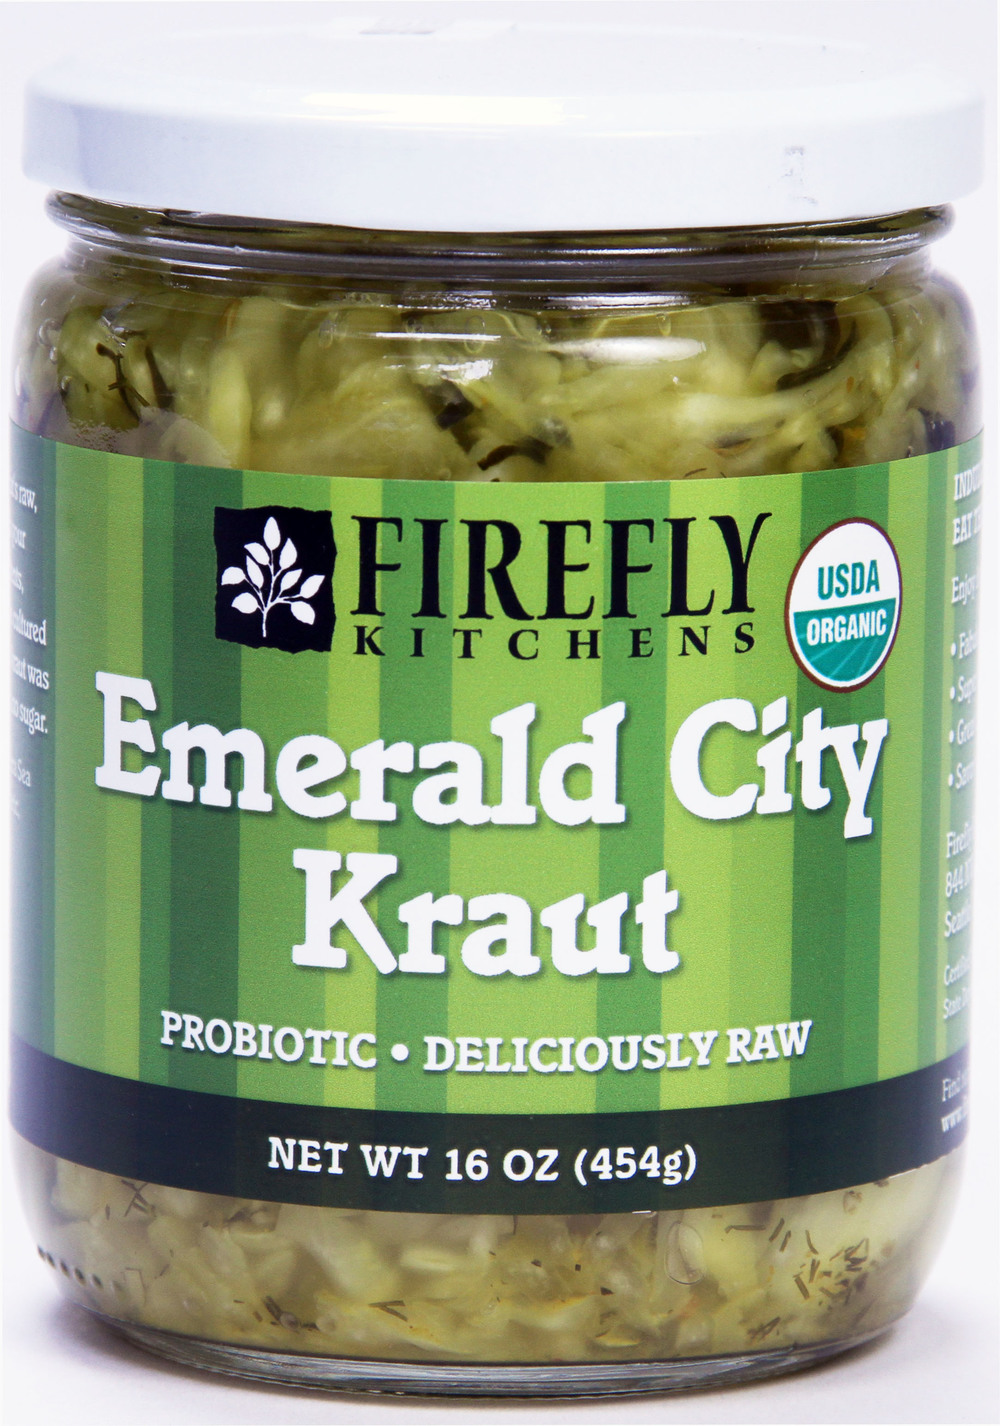 Emerald City Kraut.jpg